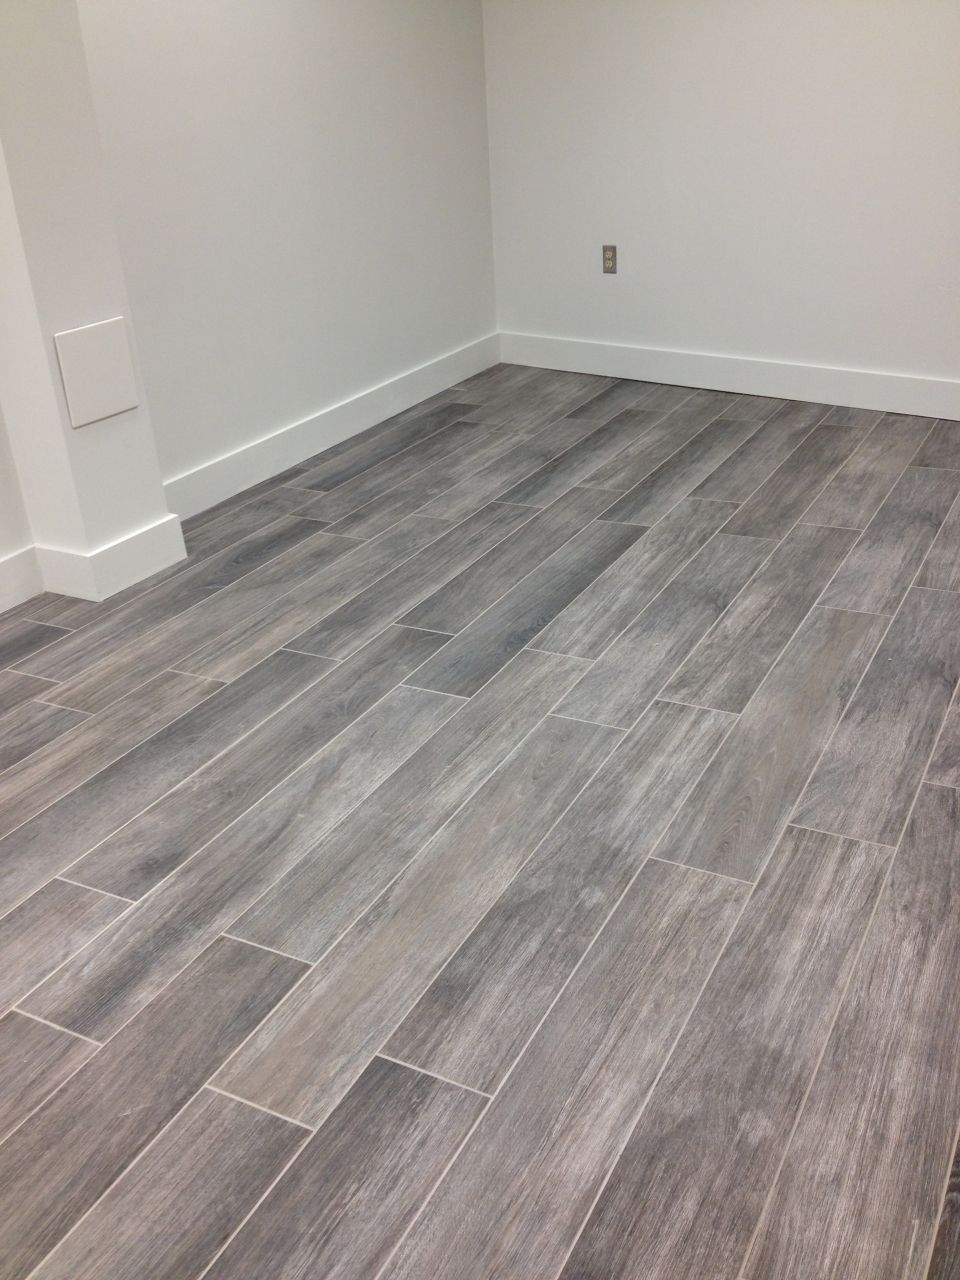 Gray wood tile floor no3lcd6n8 homes pinterest wood tile our porcelain tile lux wood installed on this room floor dailygadgetfo Image collections